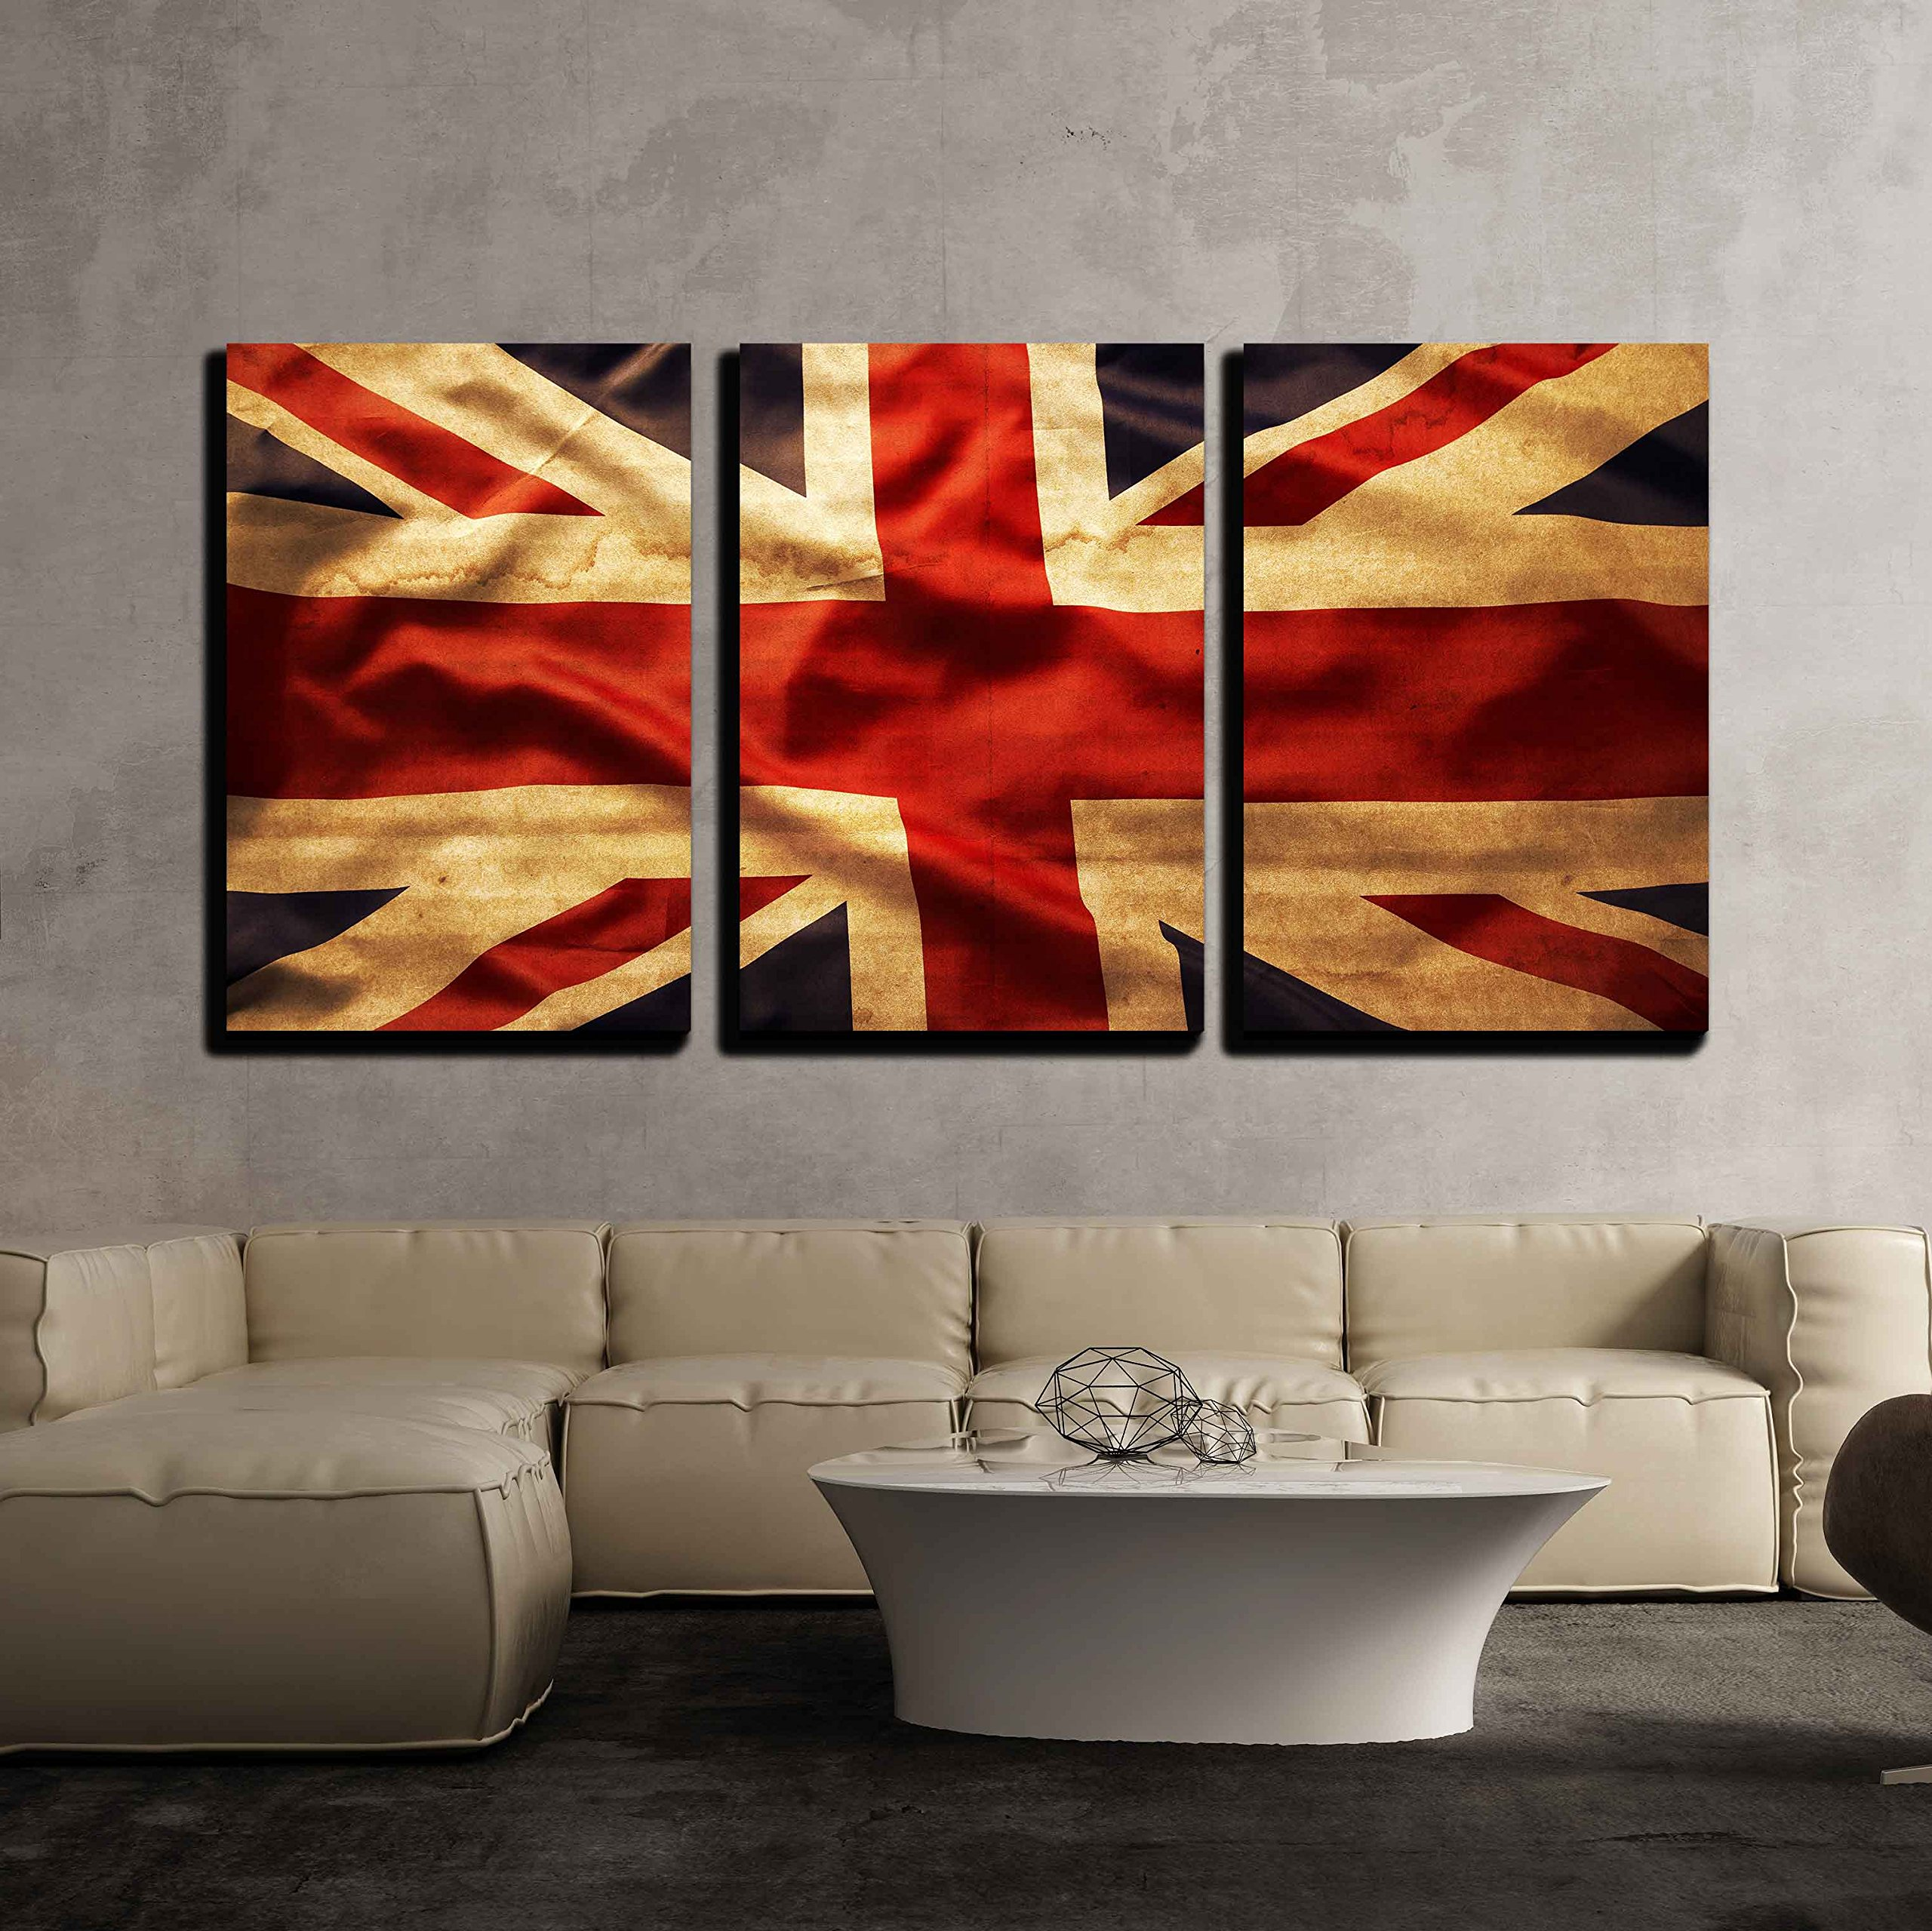 "wall26 3 Piece Canvas Wall Art - Closeup of Grunge Union Jack Flag - Modern Home Decor Stretched and Framed Ready to Hang - 16""x24""x3 Panels"